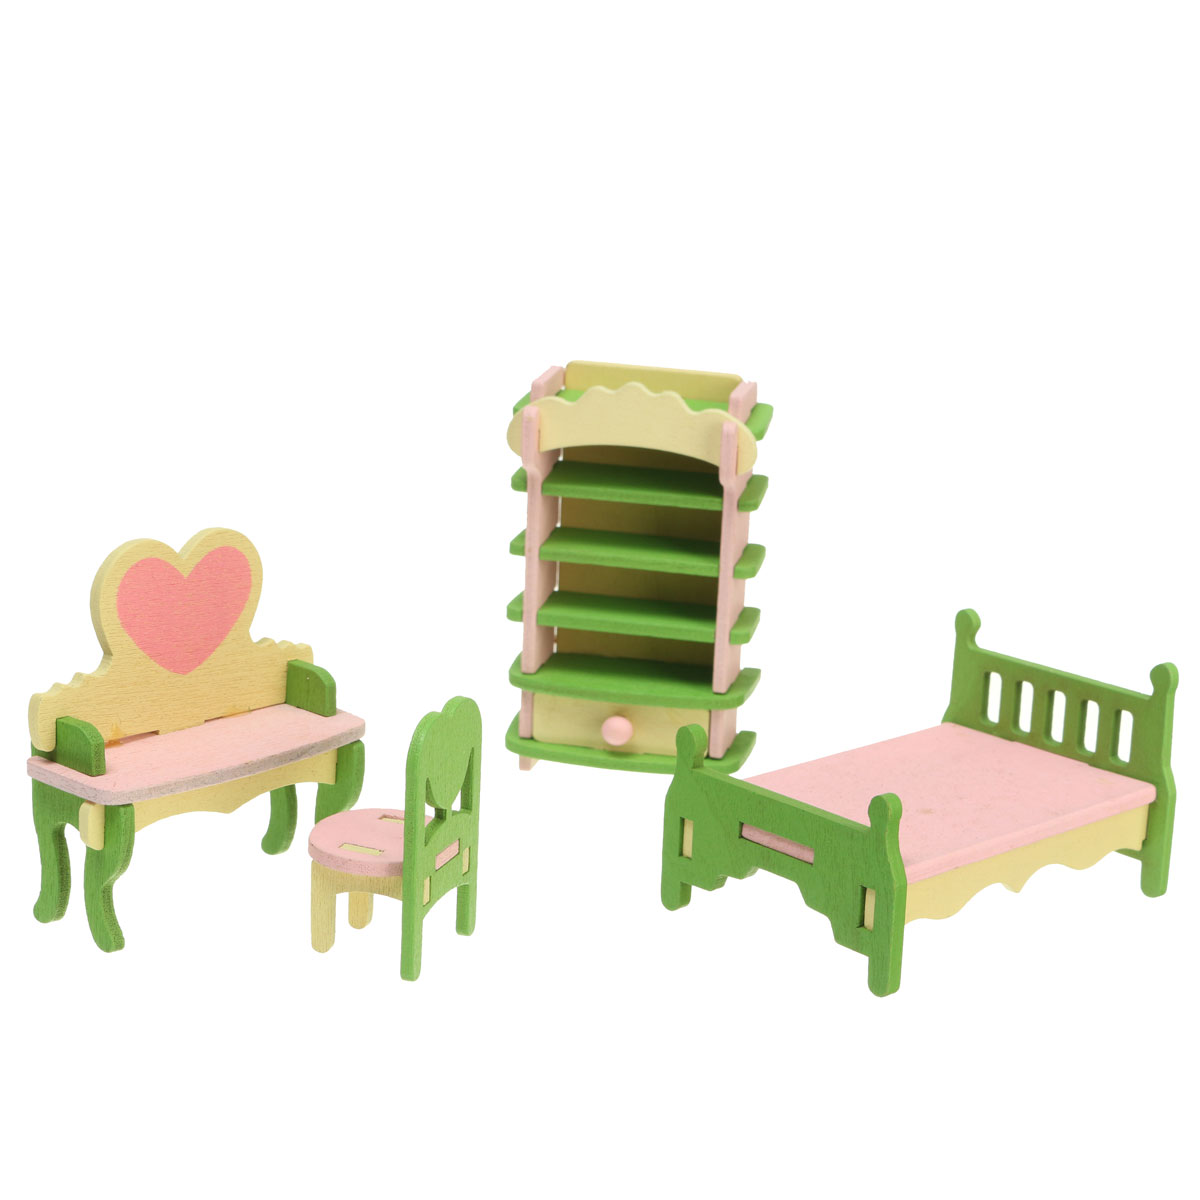 Wooden Delicate Dollhouse Furniture Toys Miniature Three dimensional Jigsaw Puzzle For Kids Children Pretend Play Dolls